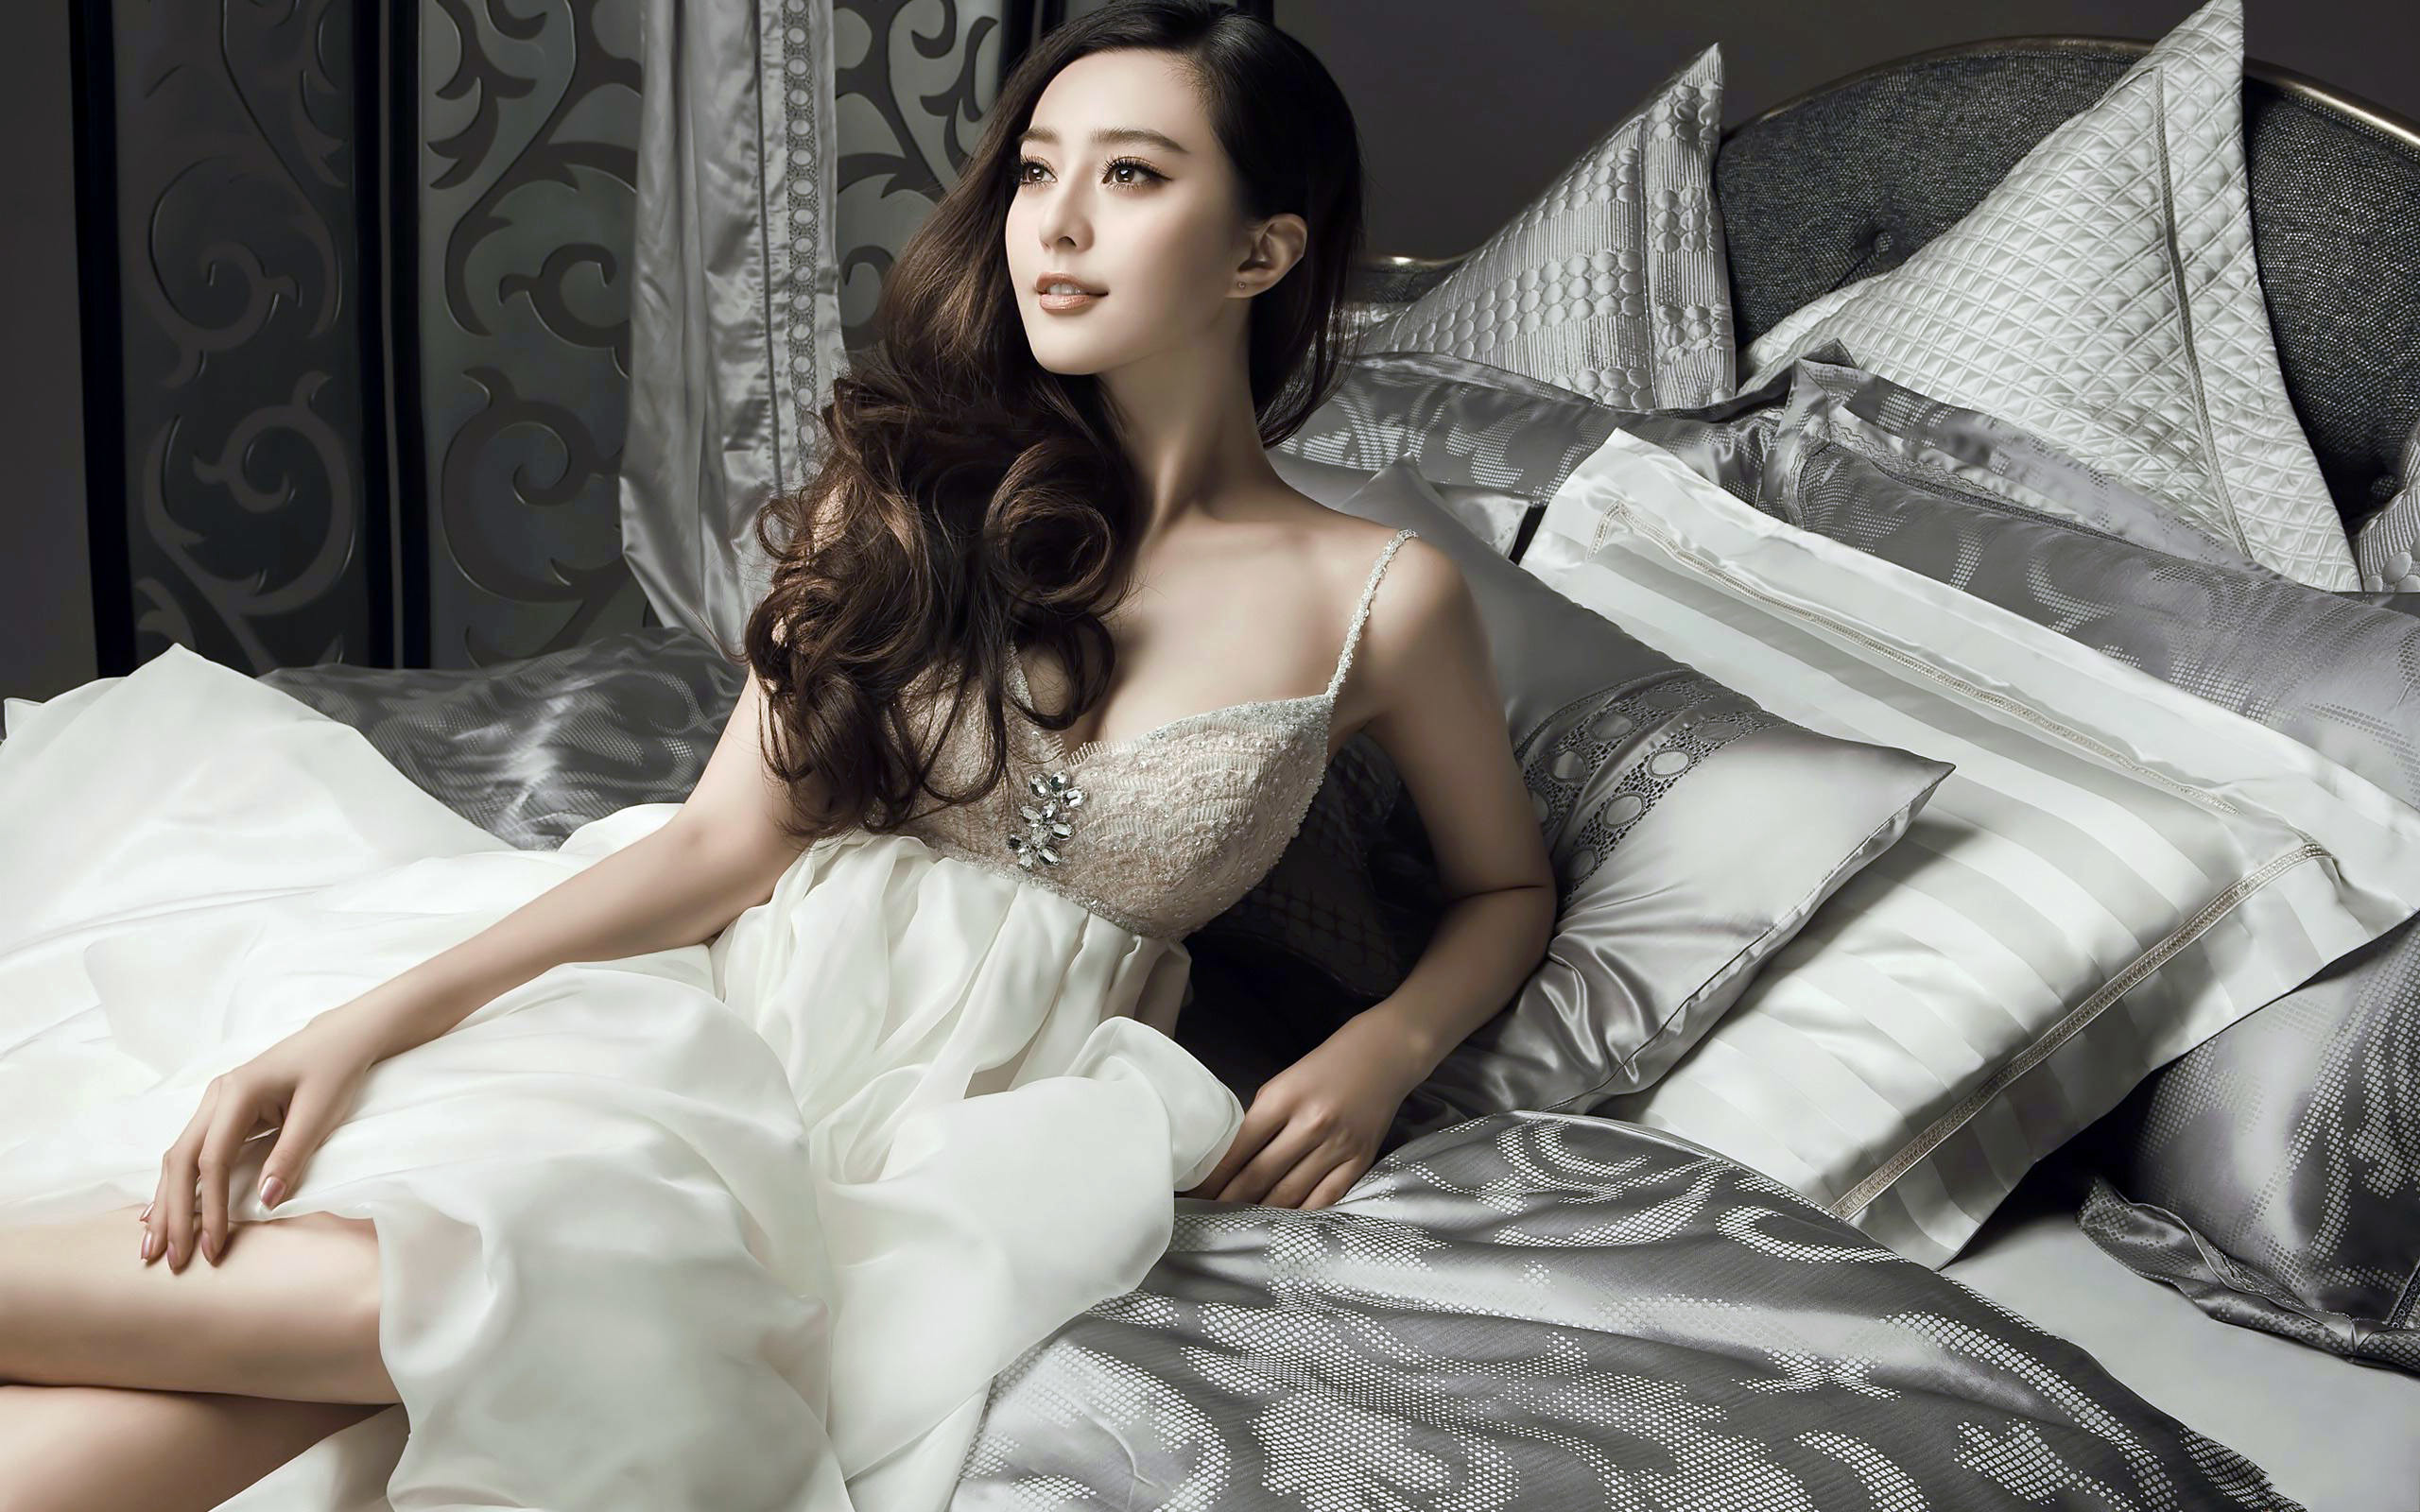 2560x1600 ... Image Gallery of Li Bingbing Ada Wong Wallpaper ...